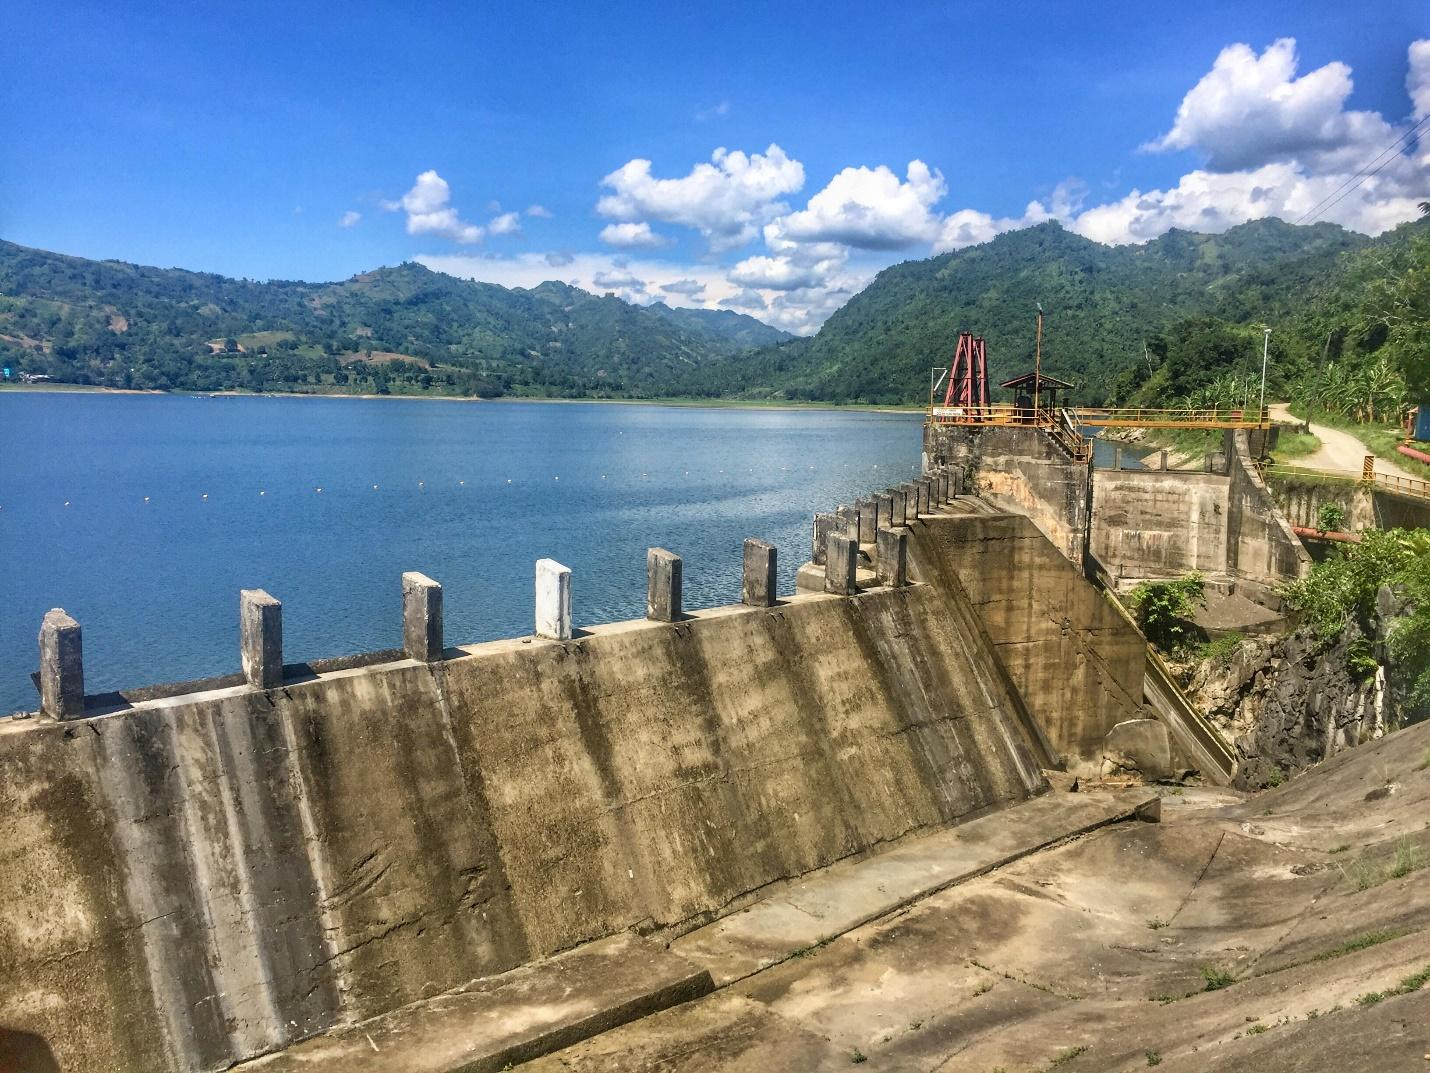 INFRASTRUCTURE. The Buhisan Dam in Cebu, a key source of water for the province. Photo by Sarah Hartman